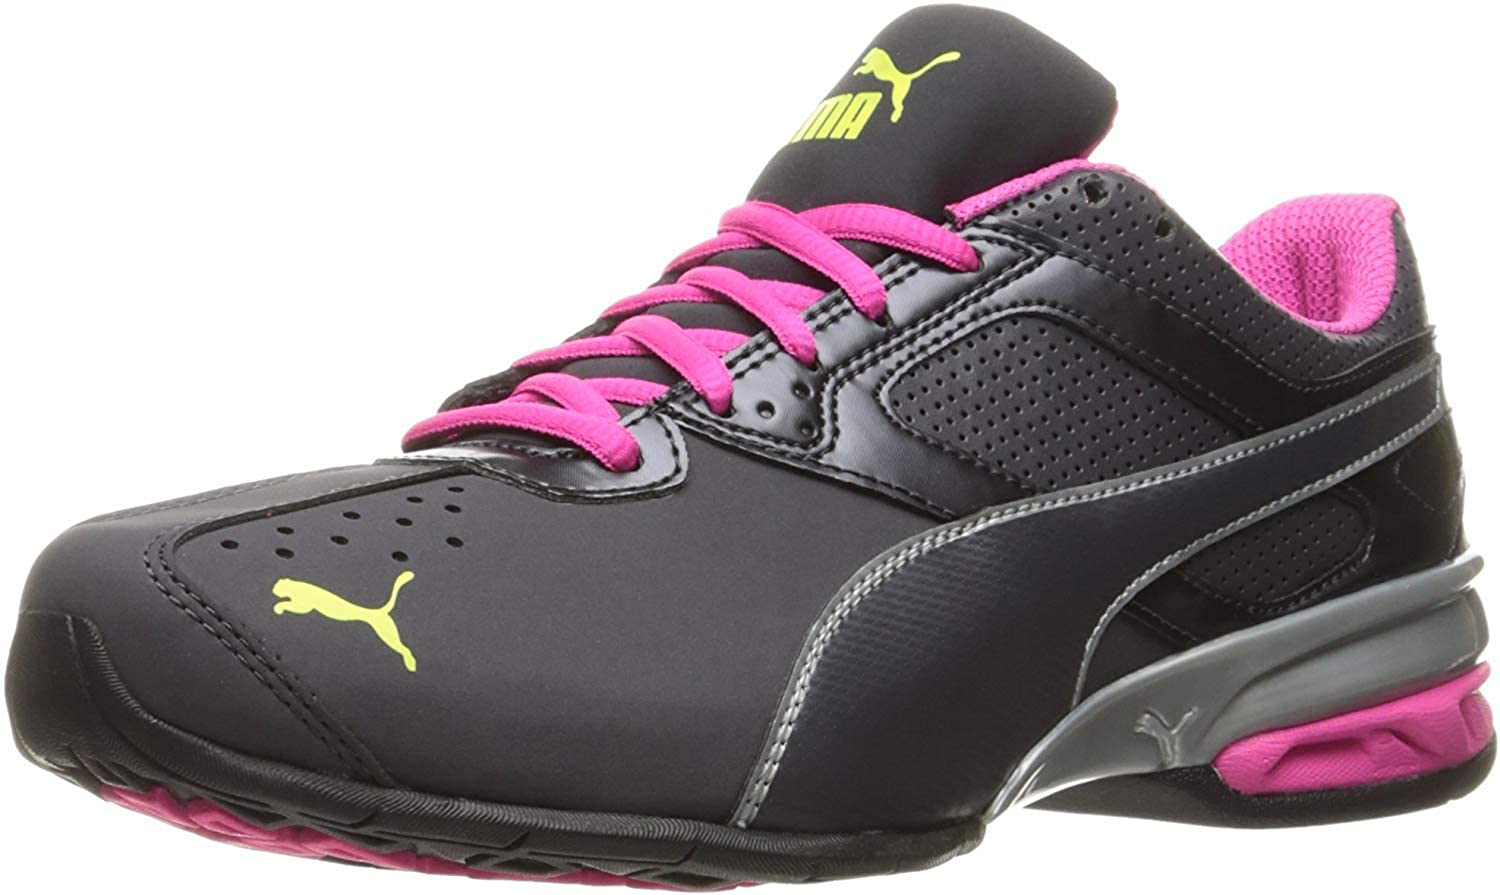 Puma Women's Tazon 6 Cross-Training Shoe